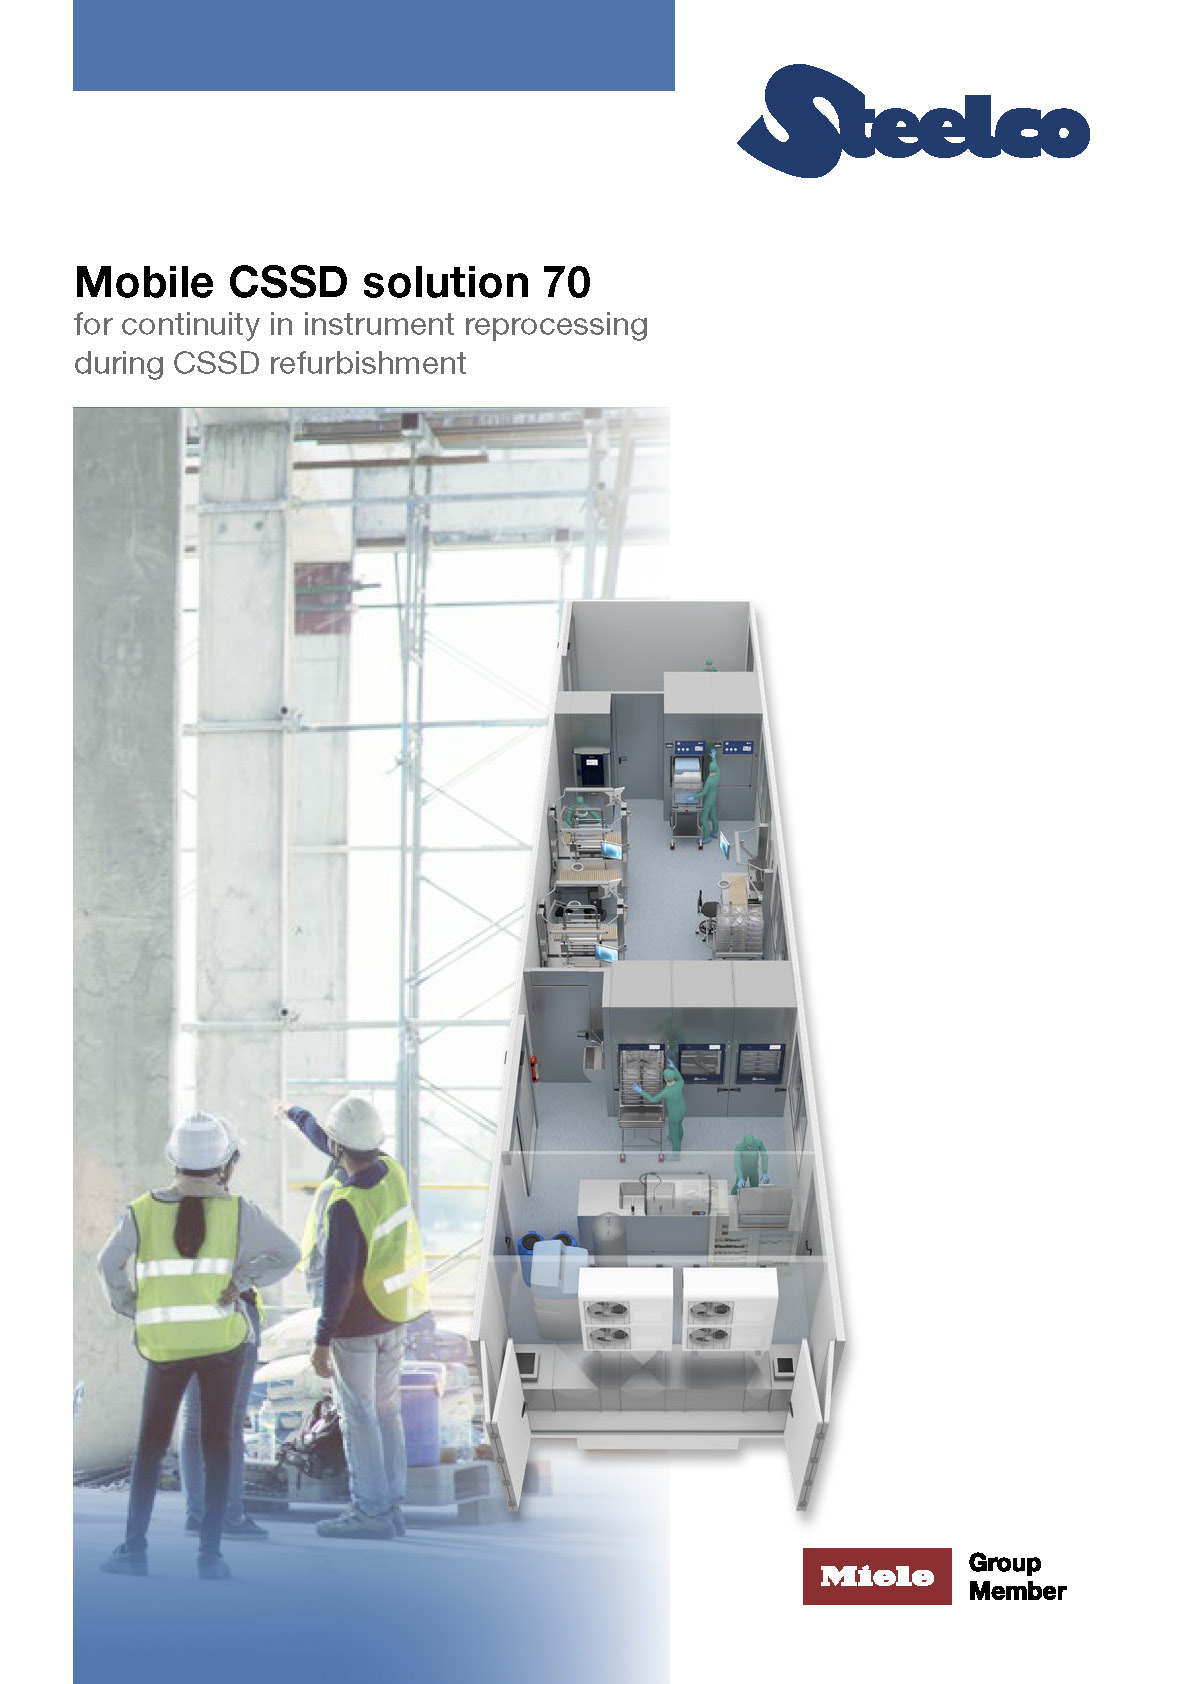 Mobile CSSD solutions